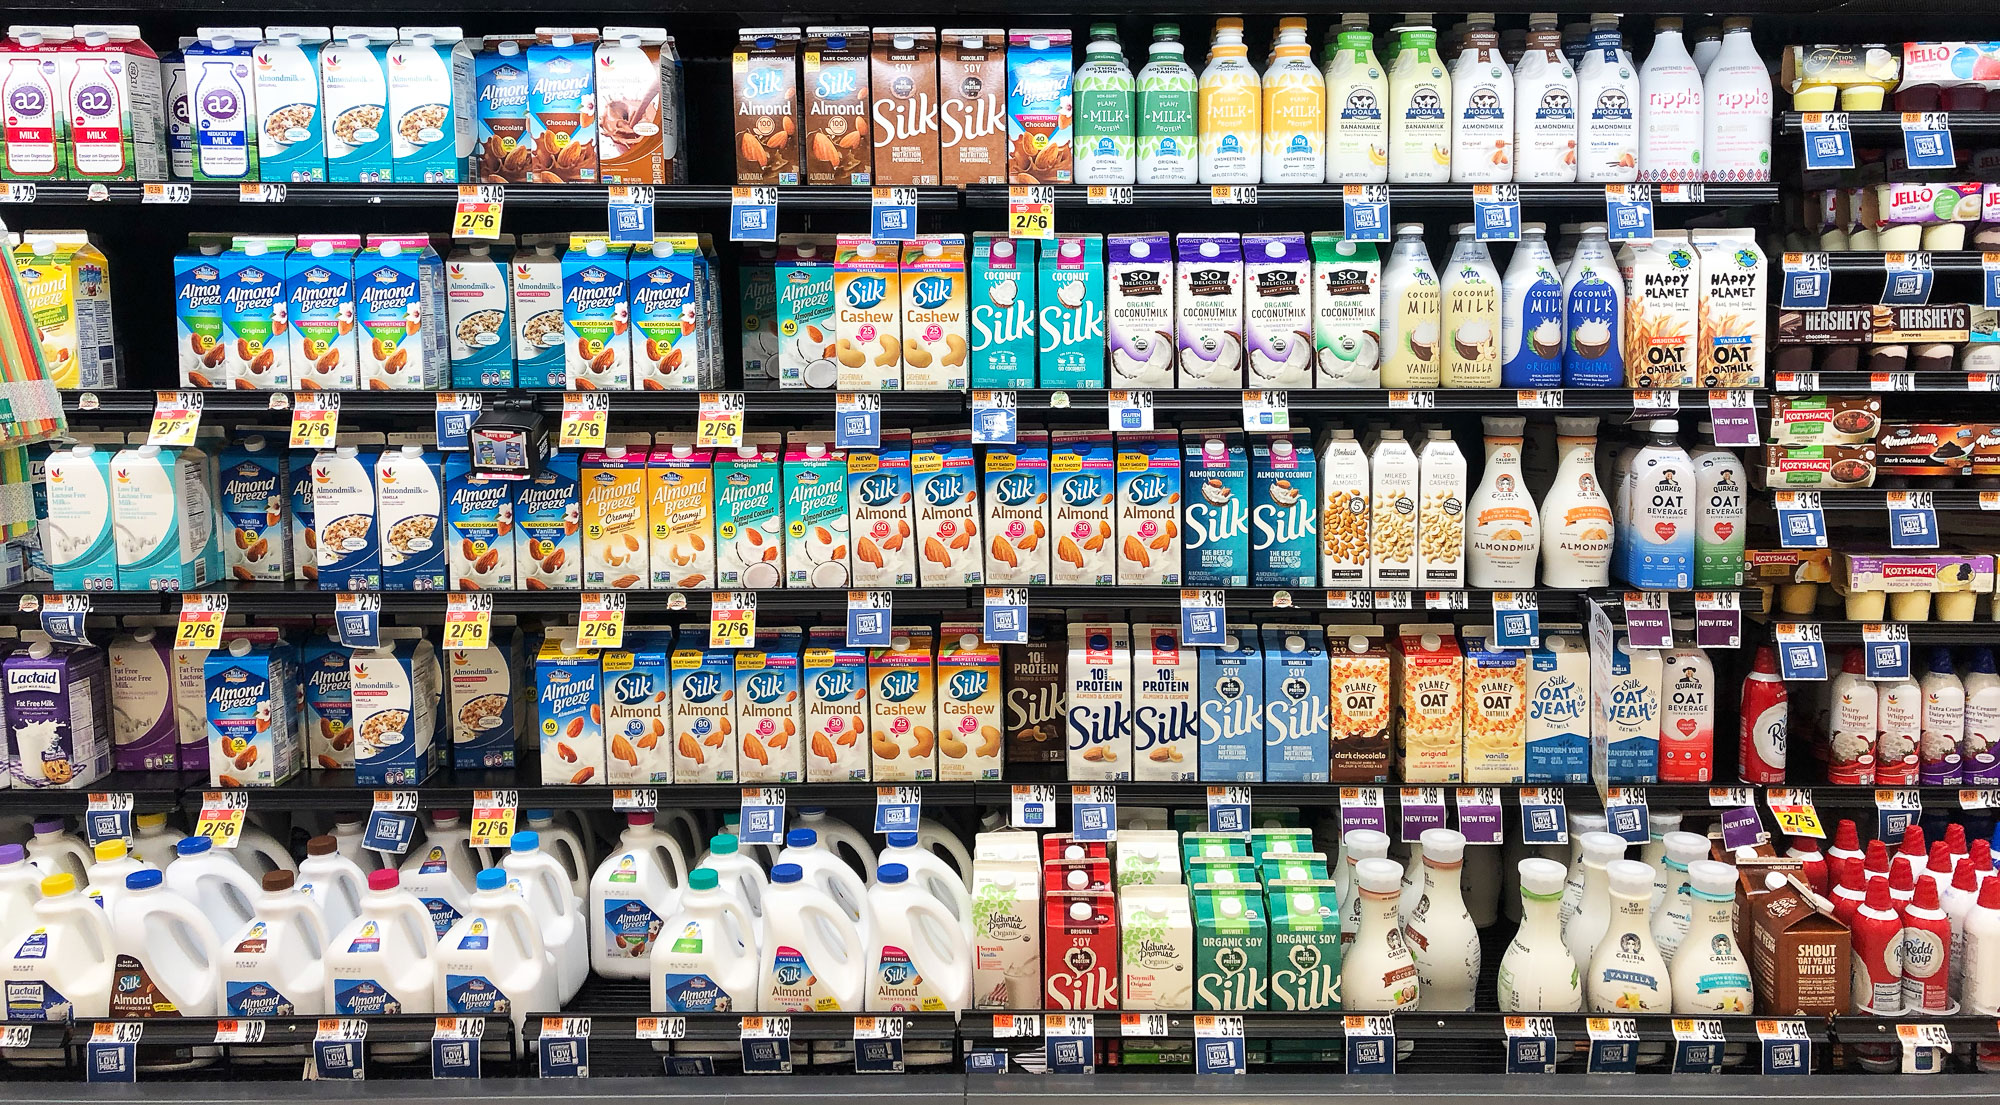 Plant-based milk is merchandised next to cow-based milk at giant foods.